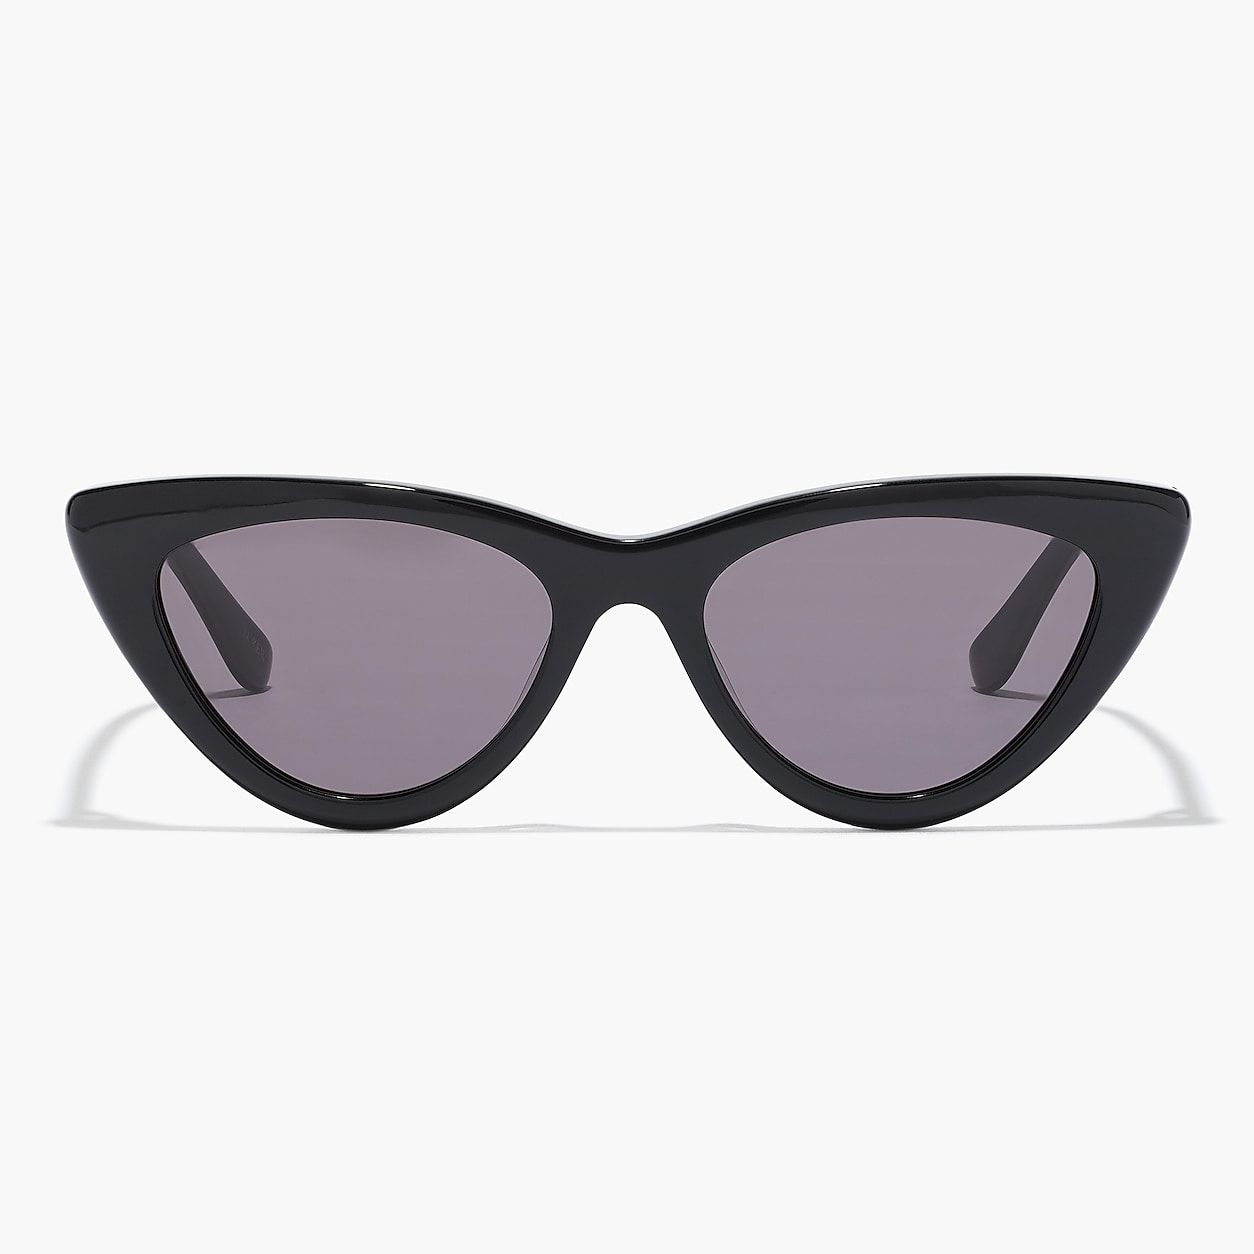 Bungalow Cat Eye Sunglasses   Products 741979881fca